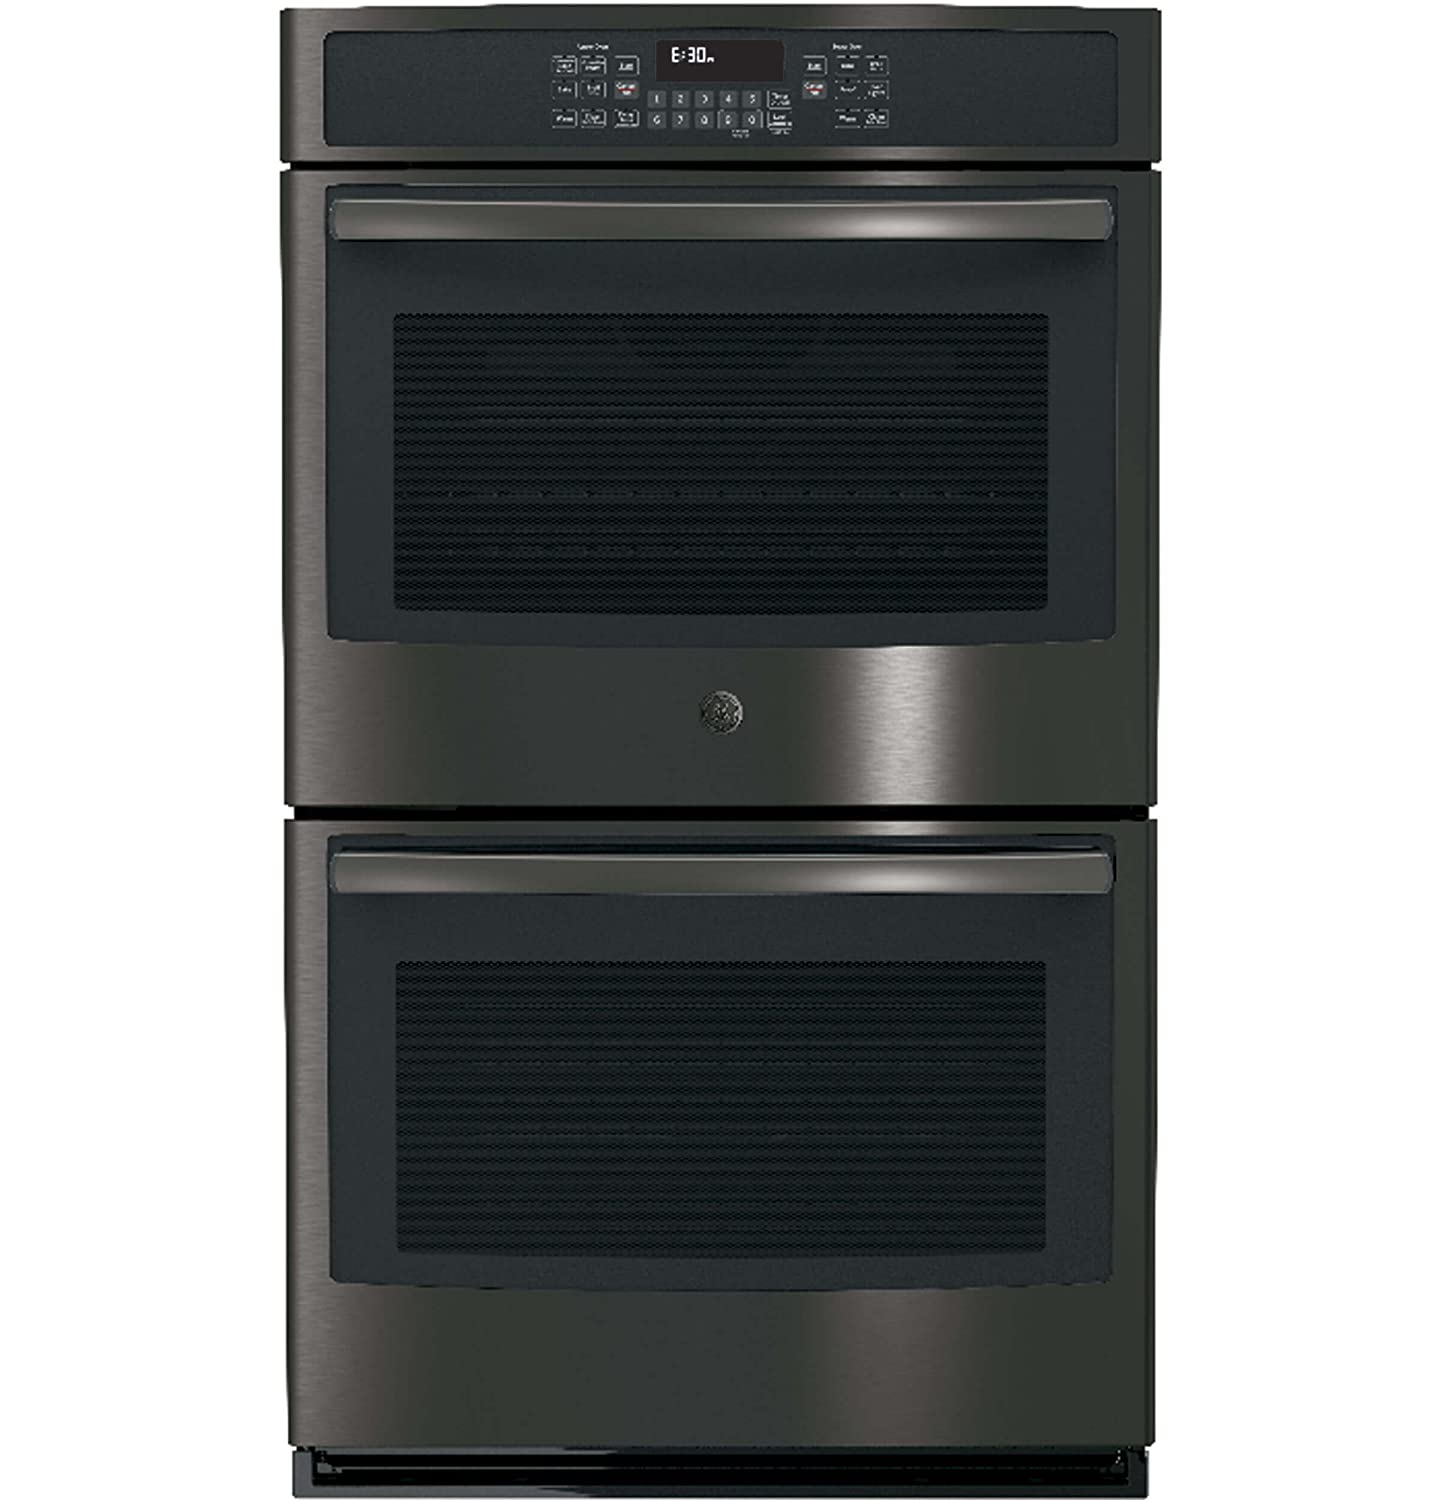 GE JT5500BLTS 30 Inch 10 cu. ft. Total Capacity Electric Double Wall Oven in Black Stainless Steel